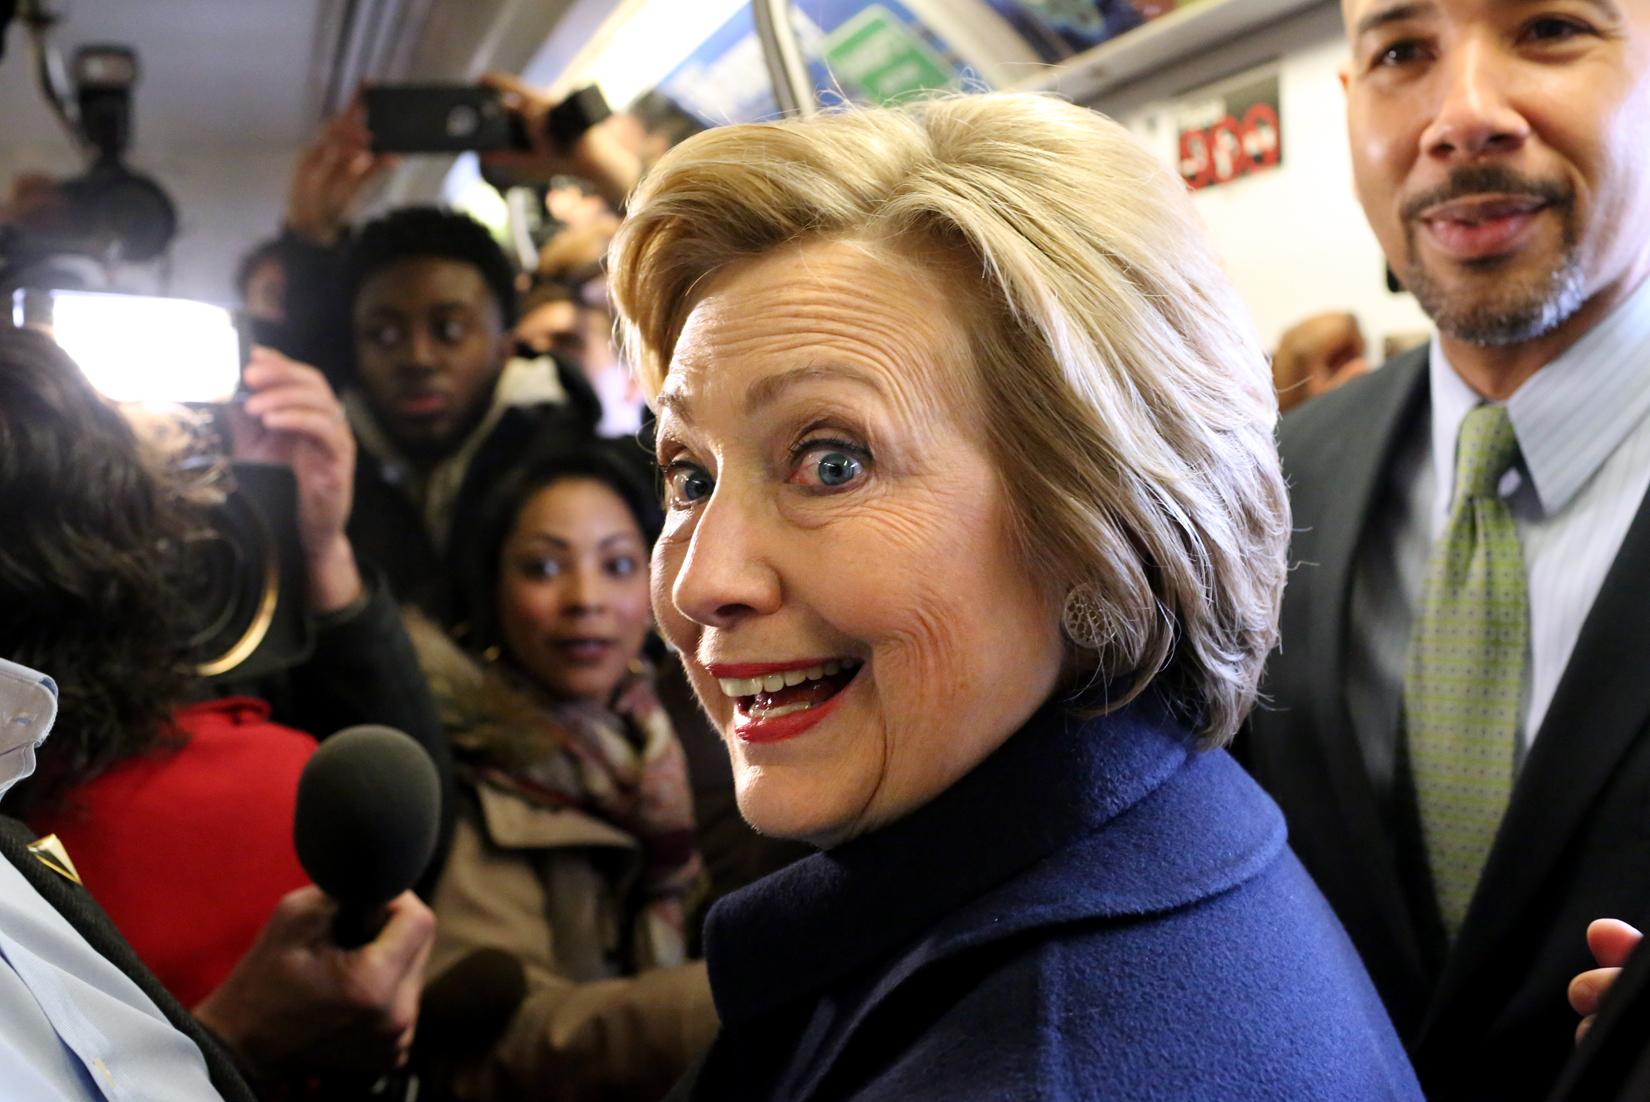 U.S. Presidential candidate Hillary Clinton (D-NY) and Bronx borough President Ruben Diaz Jr. ride the subway from the 161st Street to the 170th Street subway station in the Bronx, NY, on April 07, 2016.